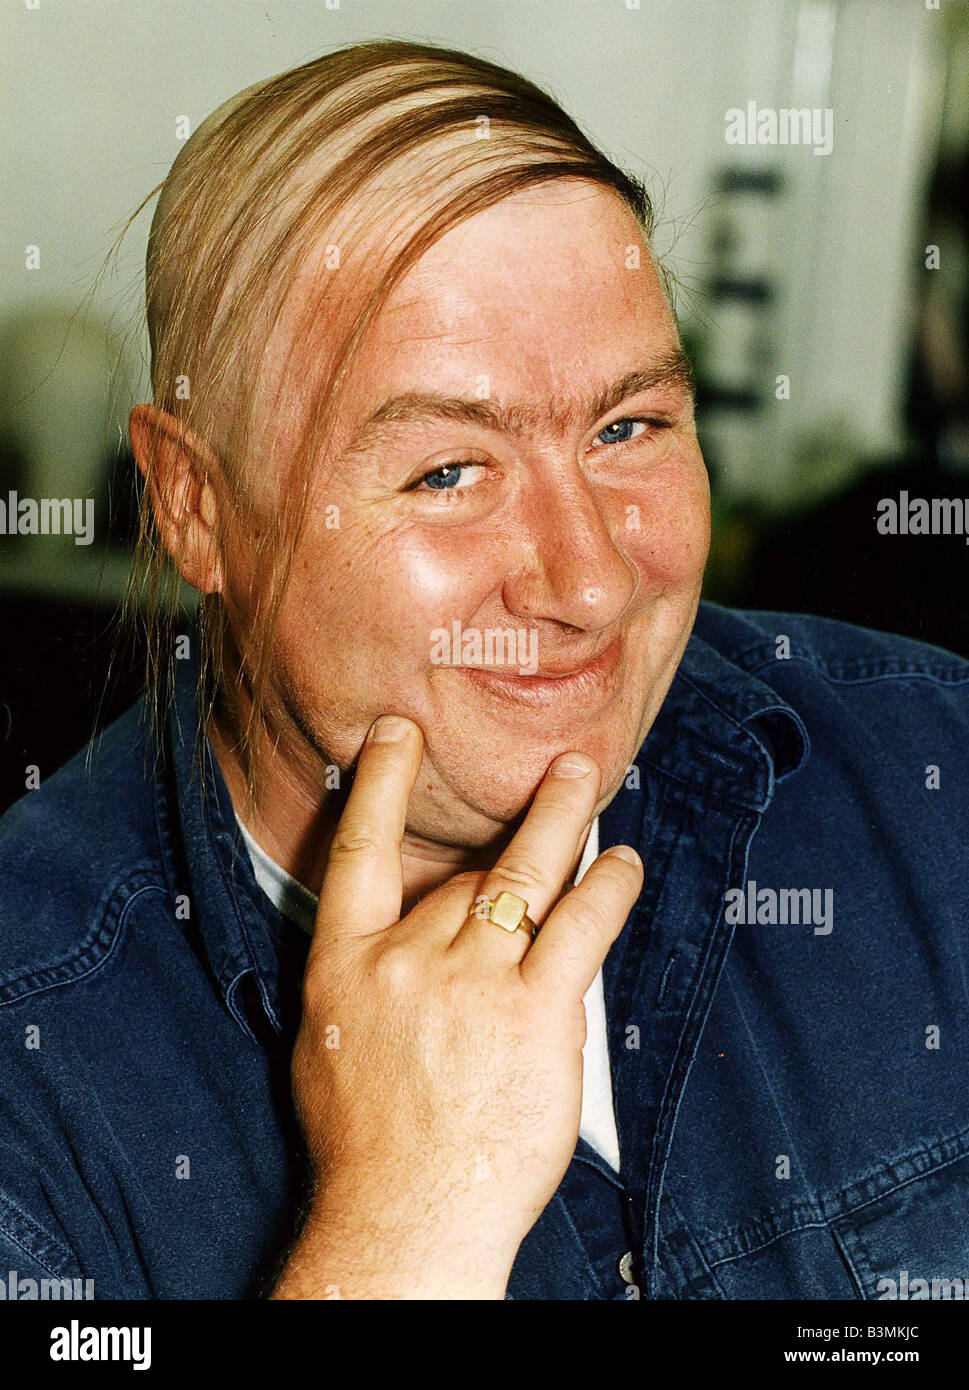 gregor fisher actor comedian as the baldy man character stock photo